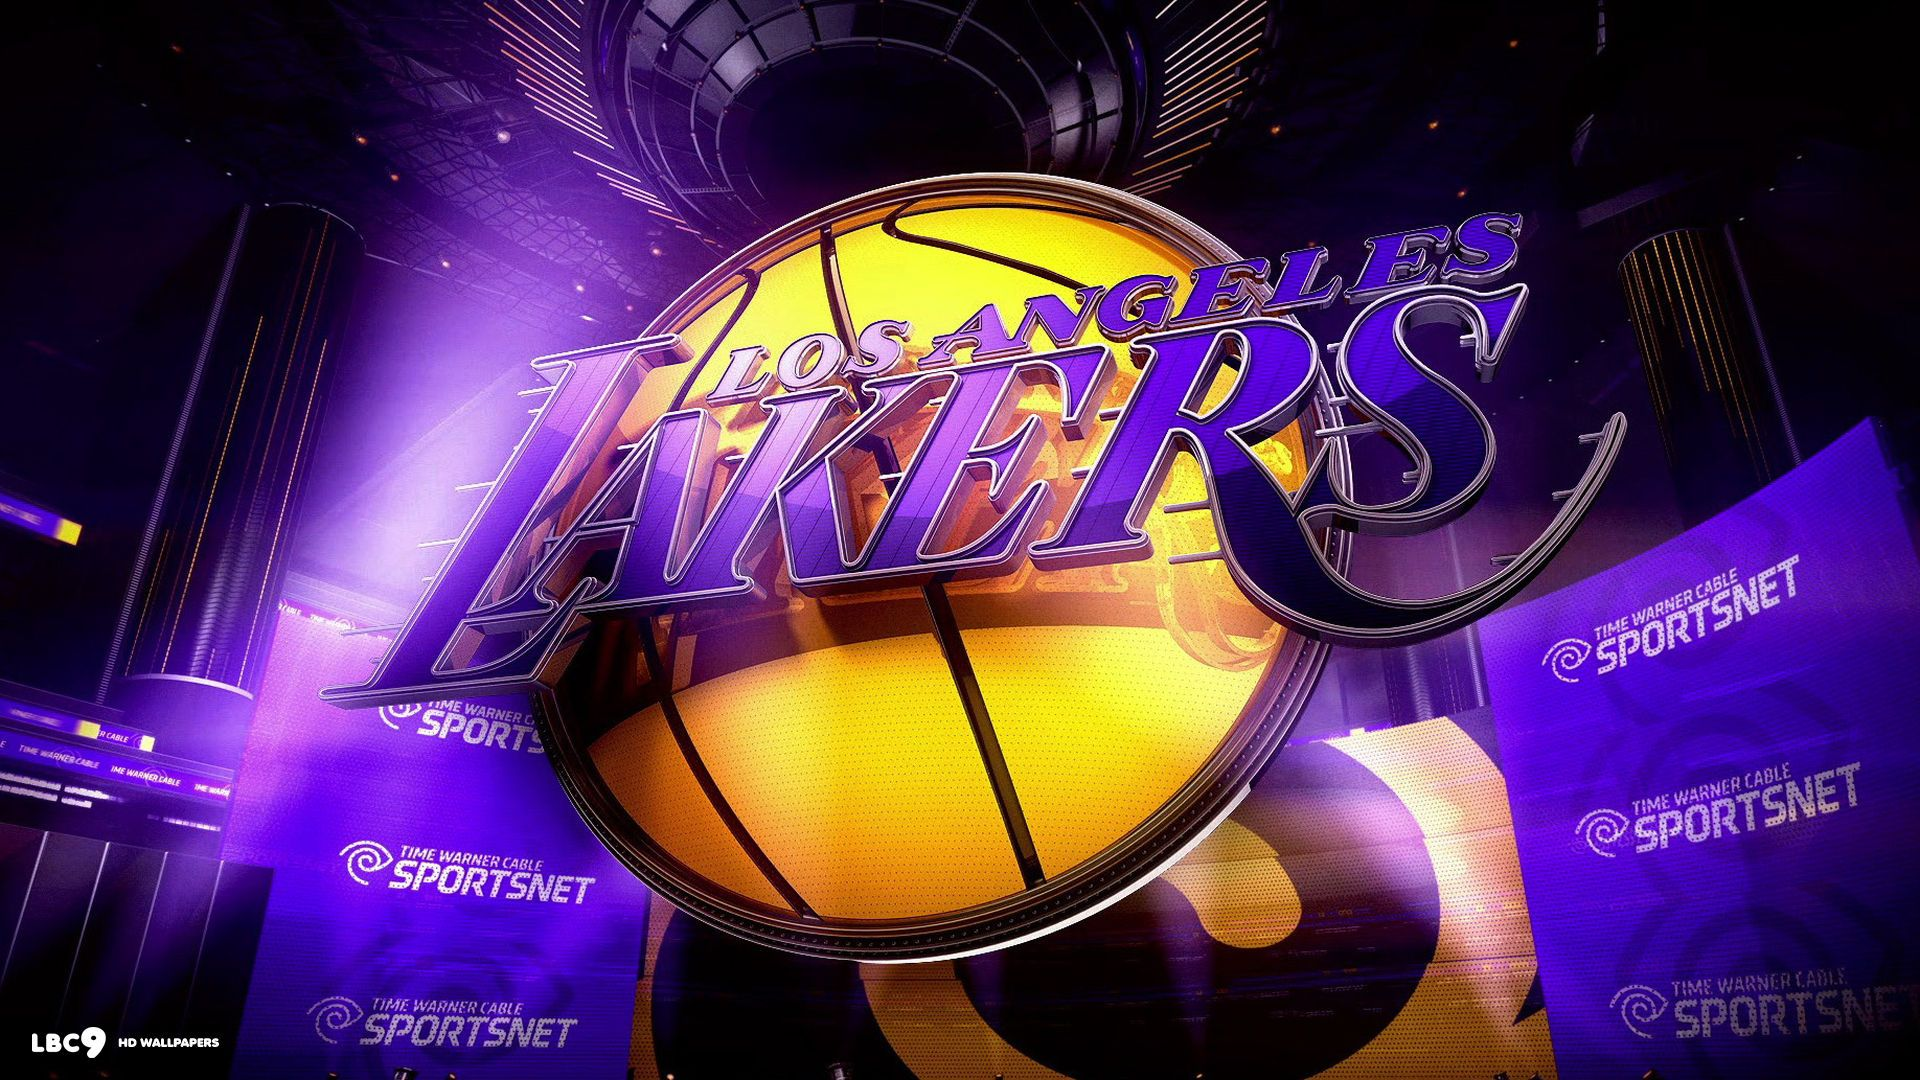 los angeles lakers logo 3d 2013  Projects to Try  Pinterest